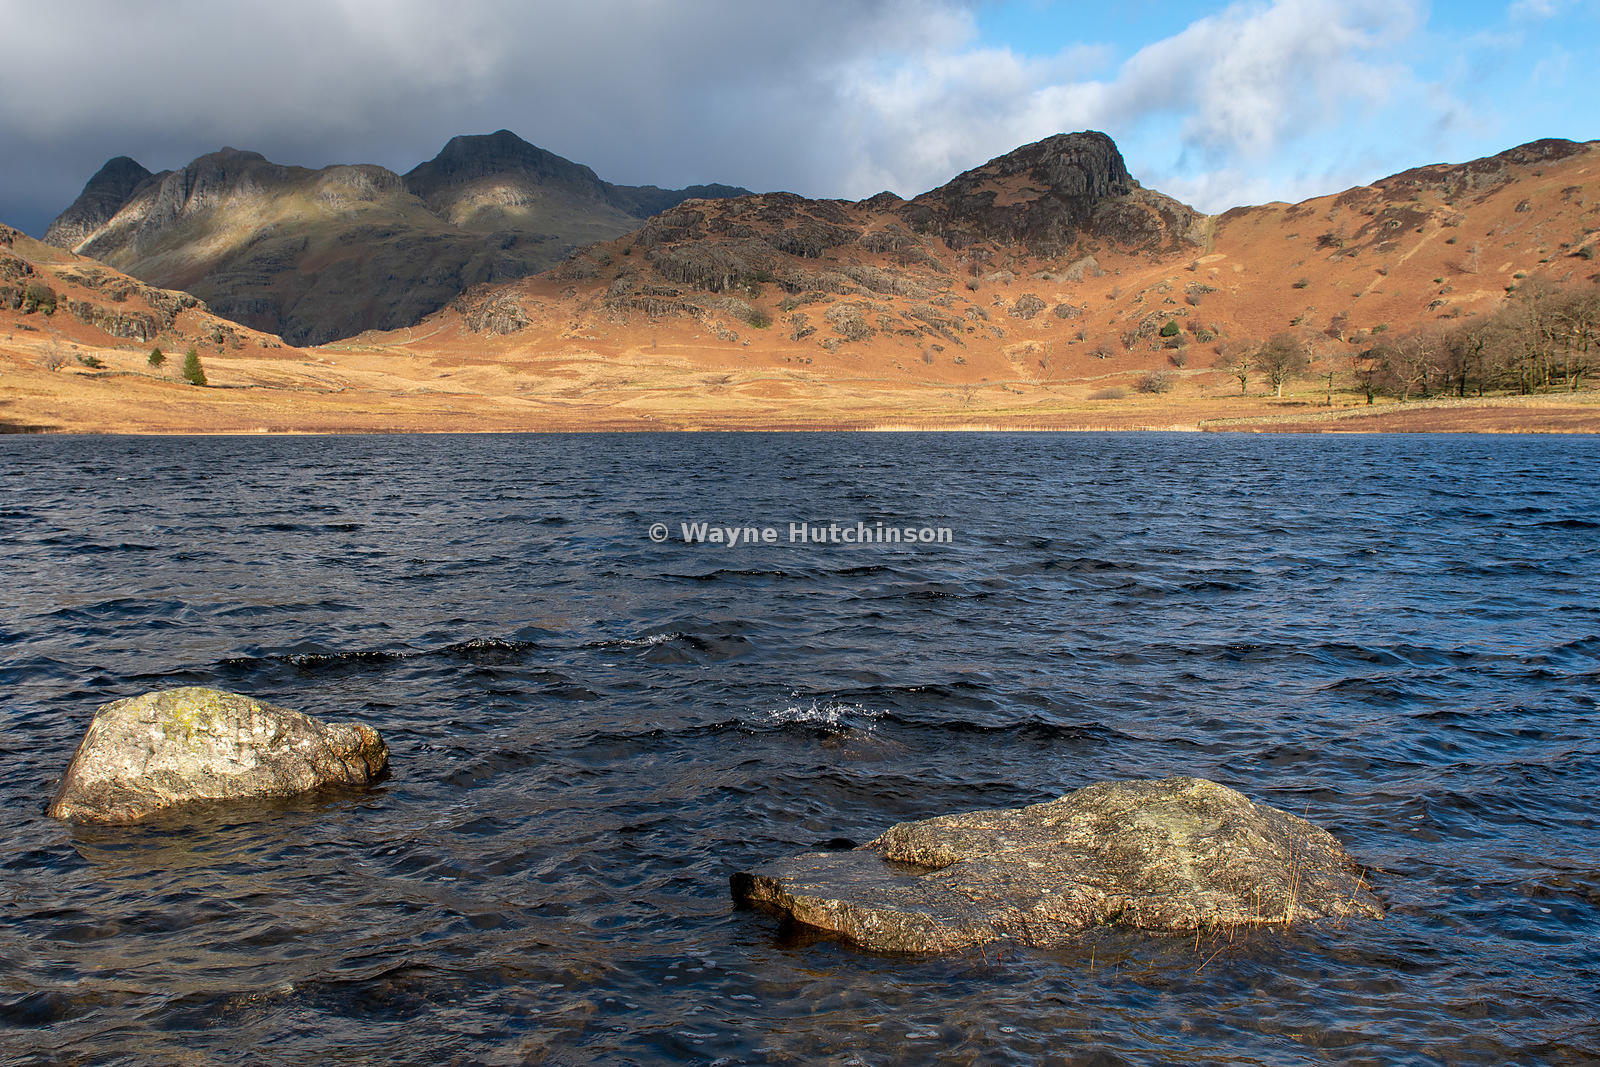 Blea Tarn in the English Lake District, looking towards the Langdales in late autumn / early winterCumbria, UK.